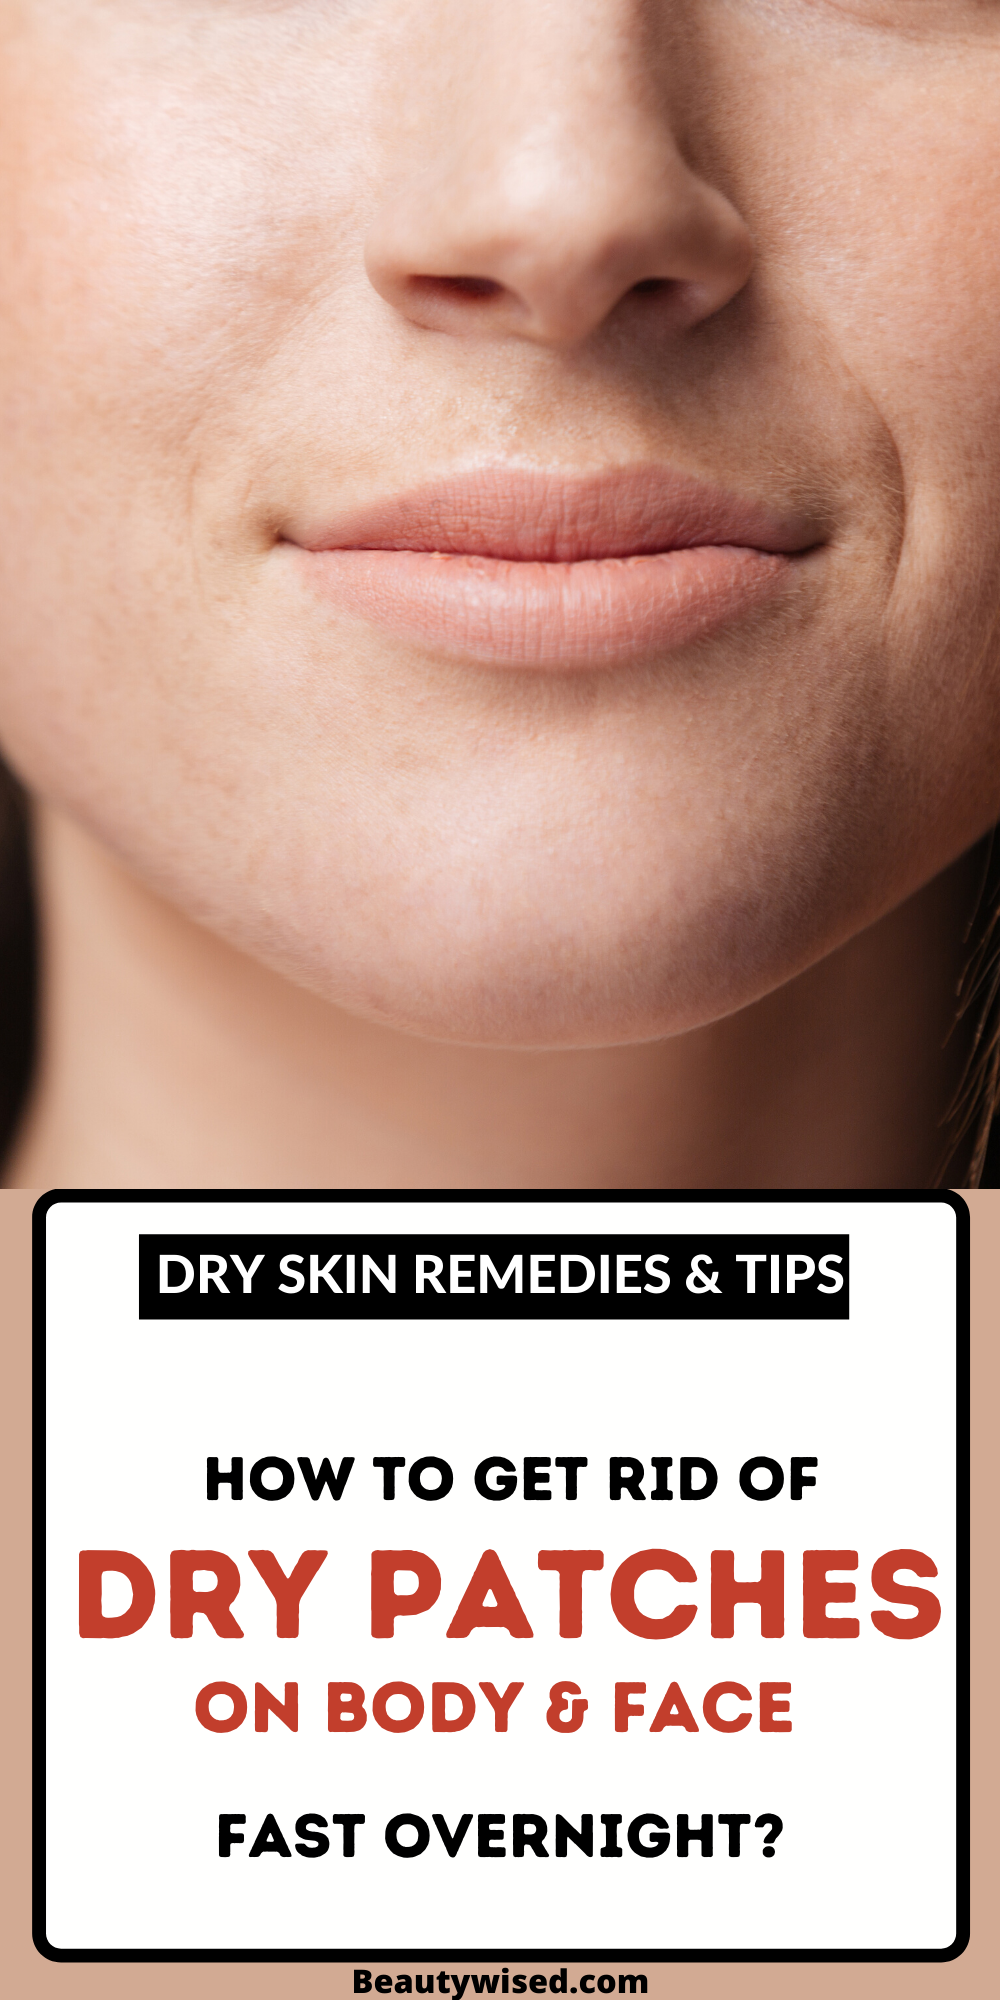 How To Get Rid Of Dry Patchy Skin On Face